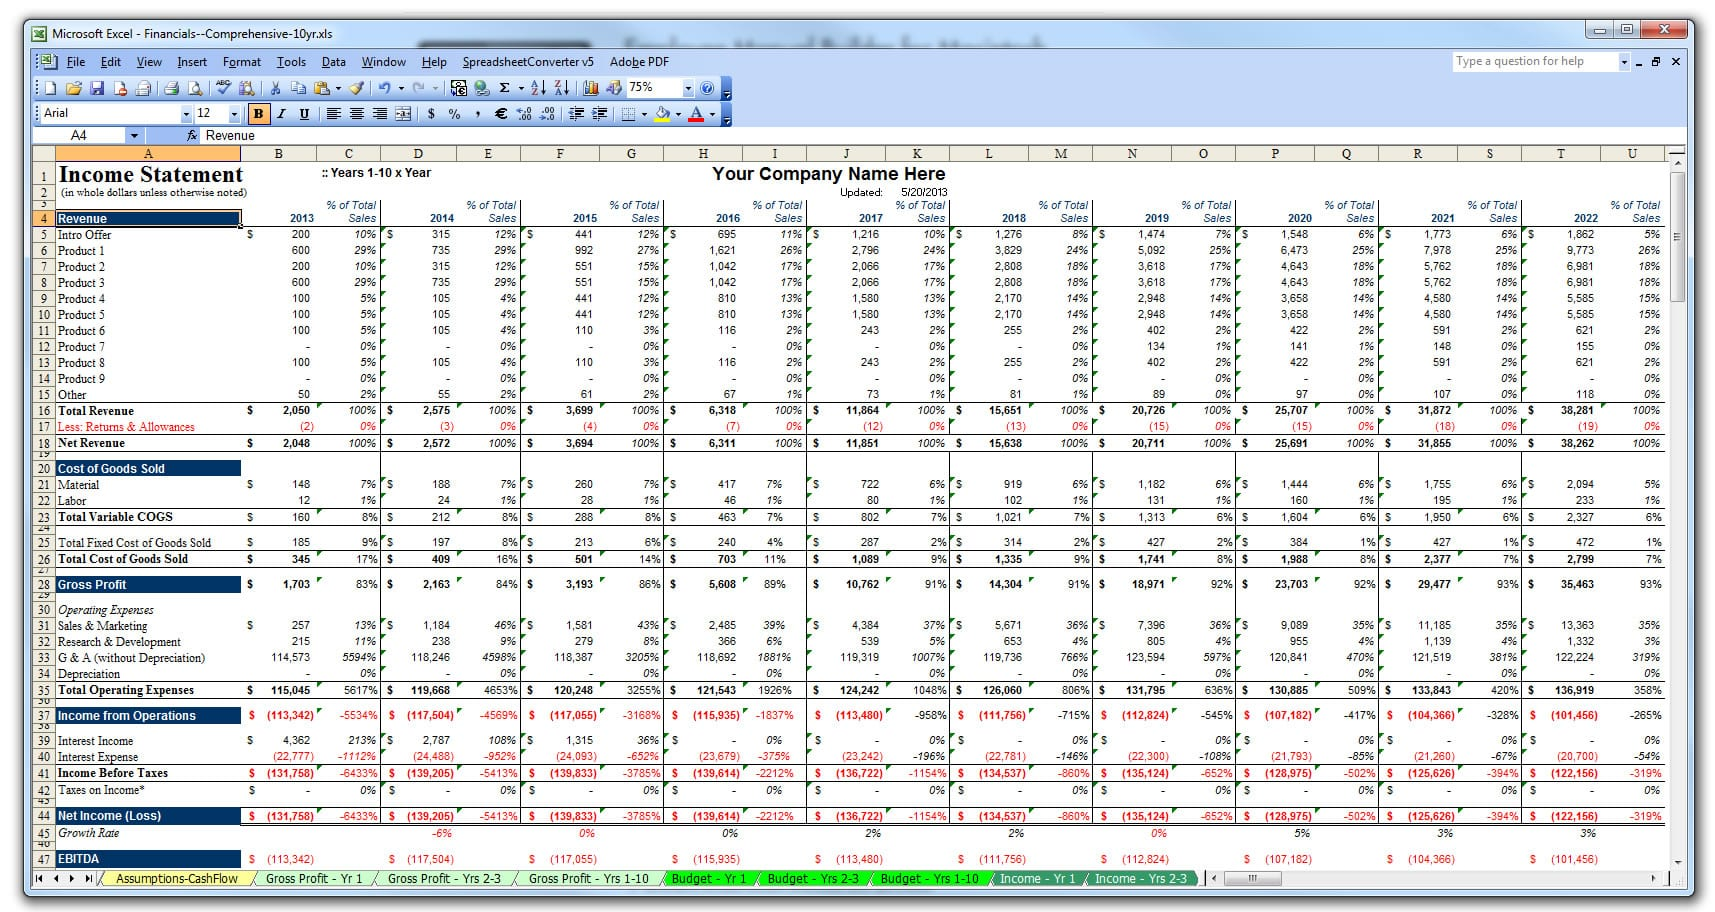 Free Financial Plan Template Excel Financial Plan Template Free Spreadsheet Templates for Busines Spreadsheet Templates for Busines Creating A Financial Plan Template